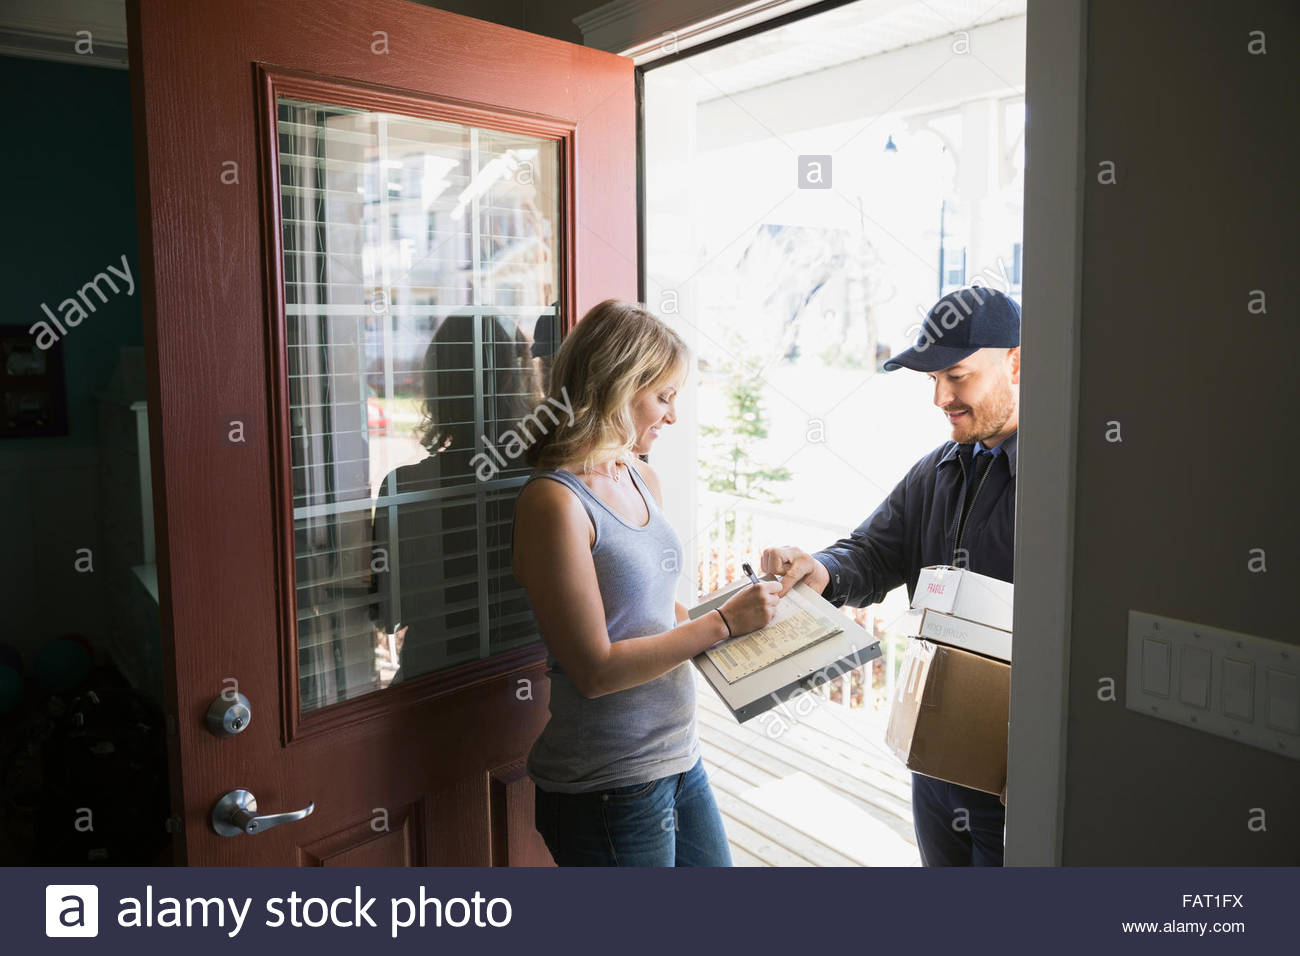 Woman signing for delivery at front door - Stock Image